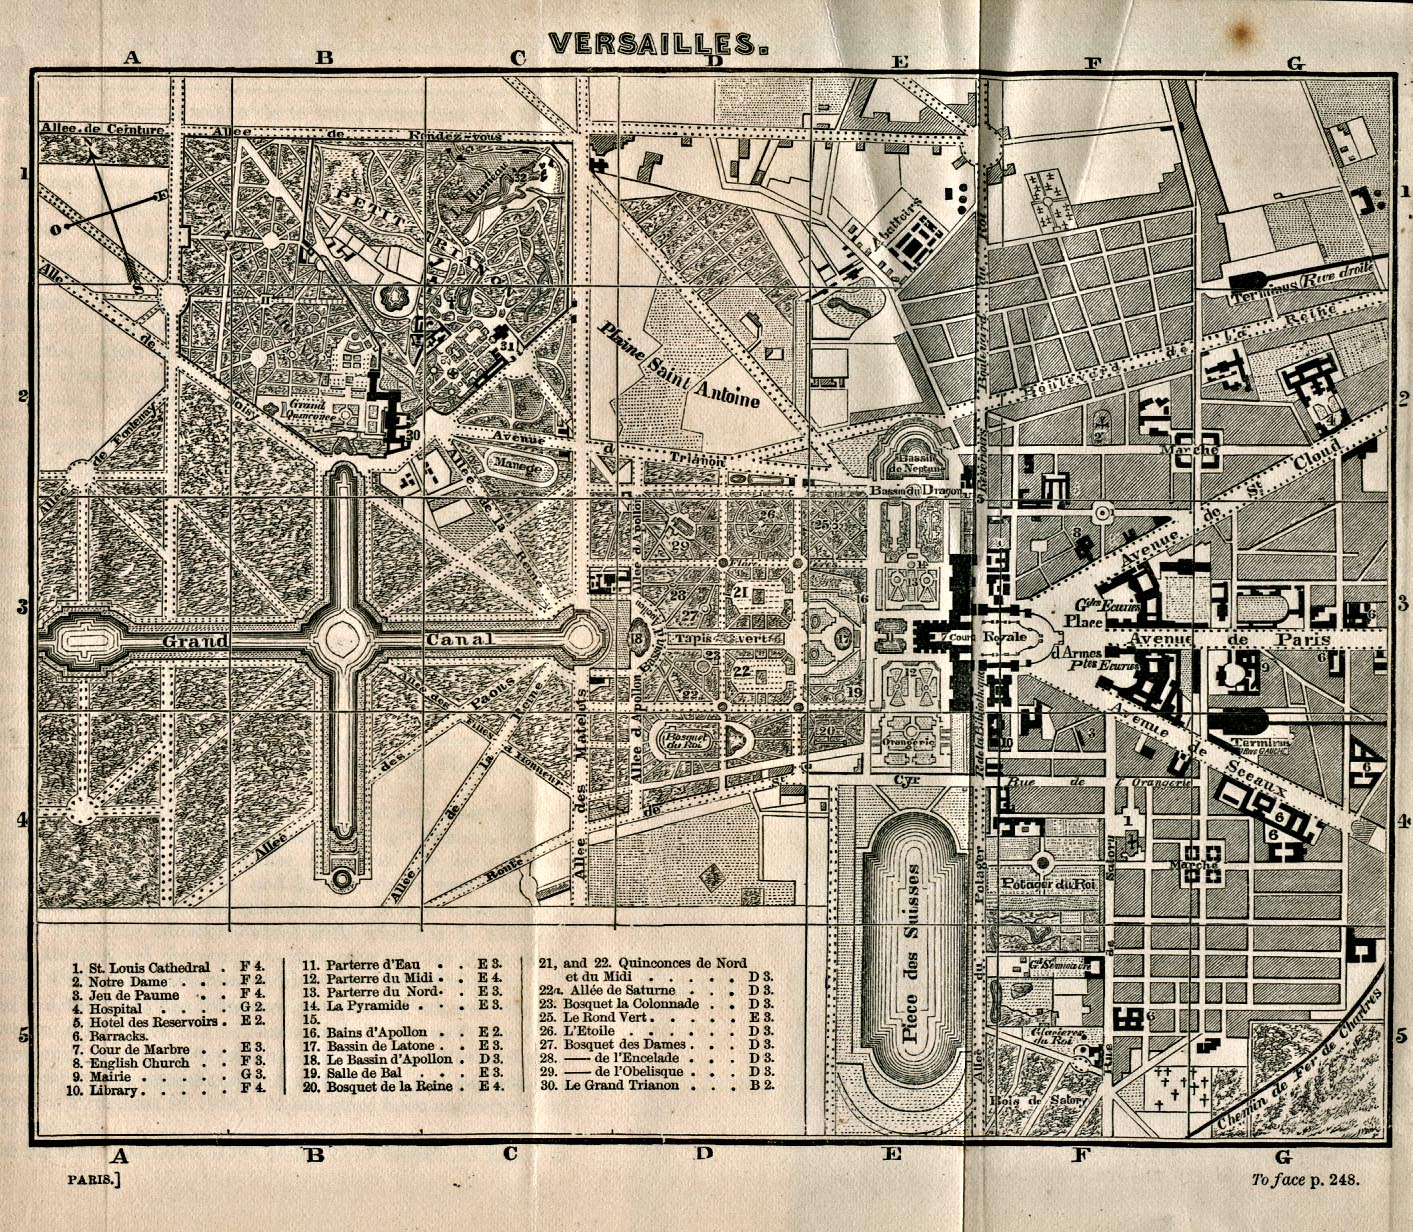 Map Of France Versailles.1up Travel Maps Of France Versailles 1866 From A Handbook For